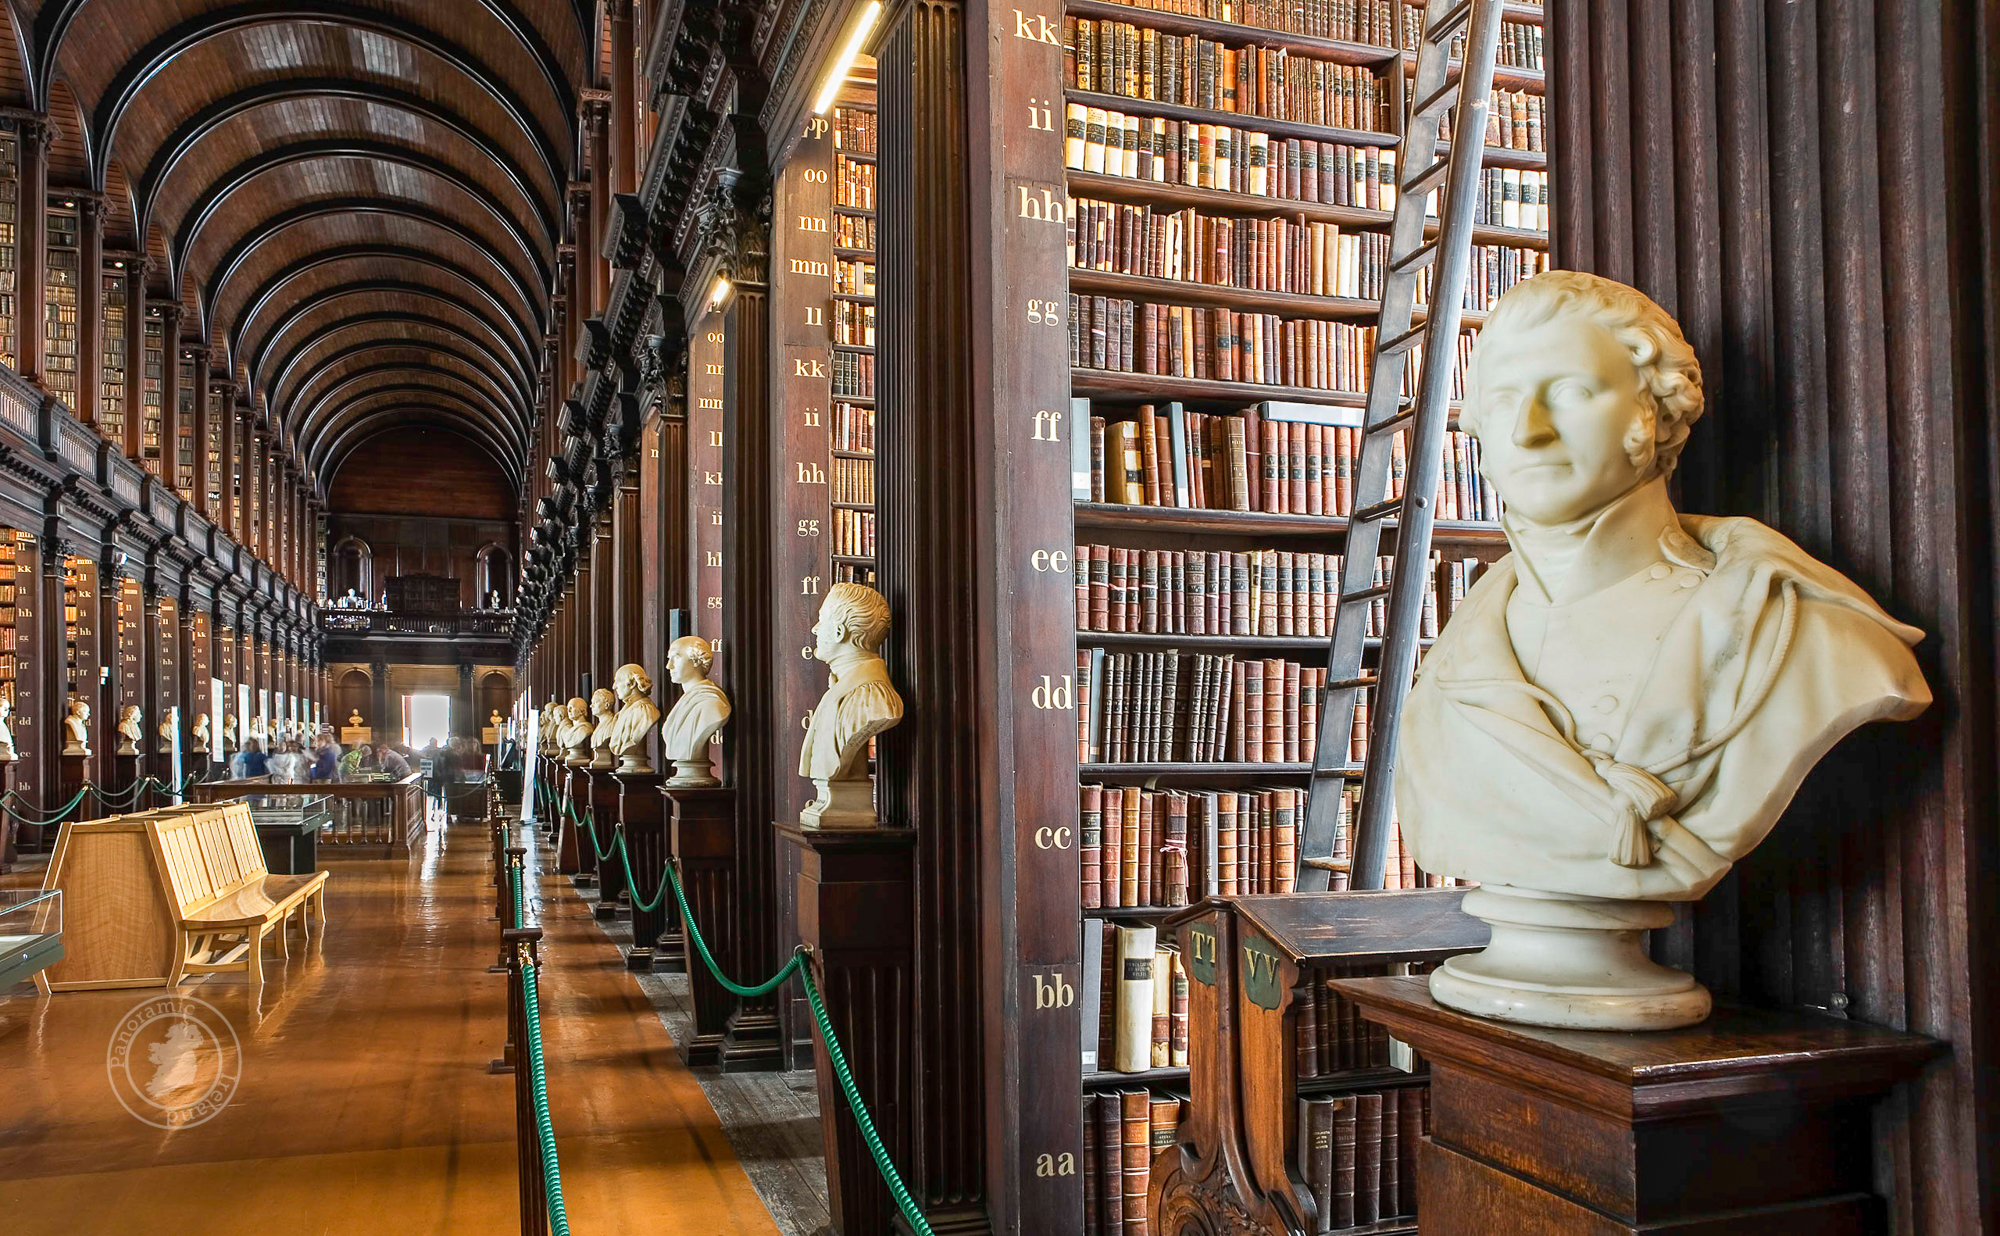 The Long Room Library in Trinity College Dublin, home to 200,000 rare books including the Book of Kells